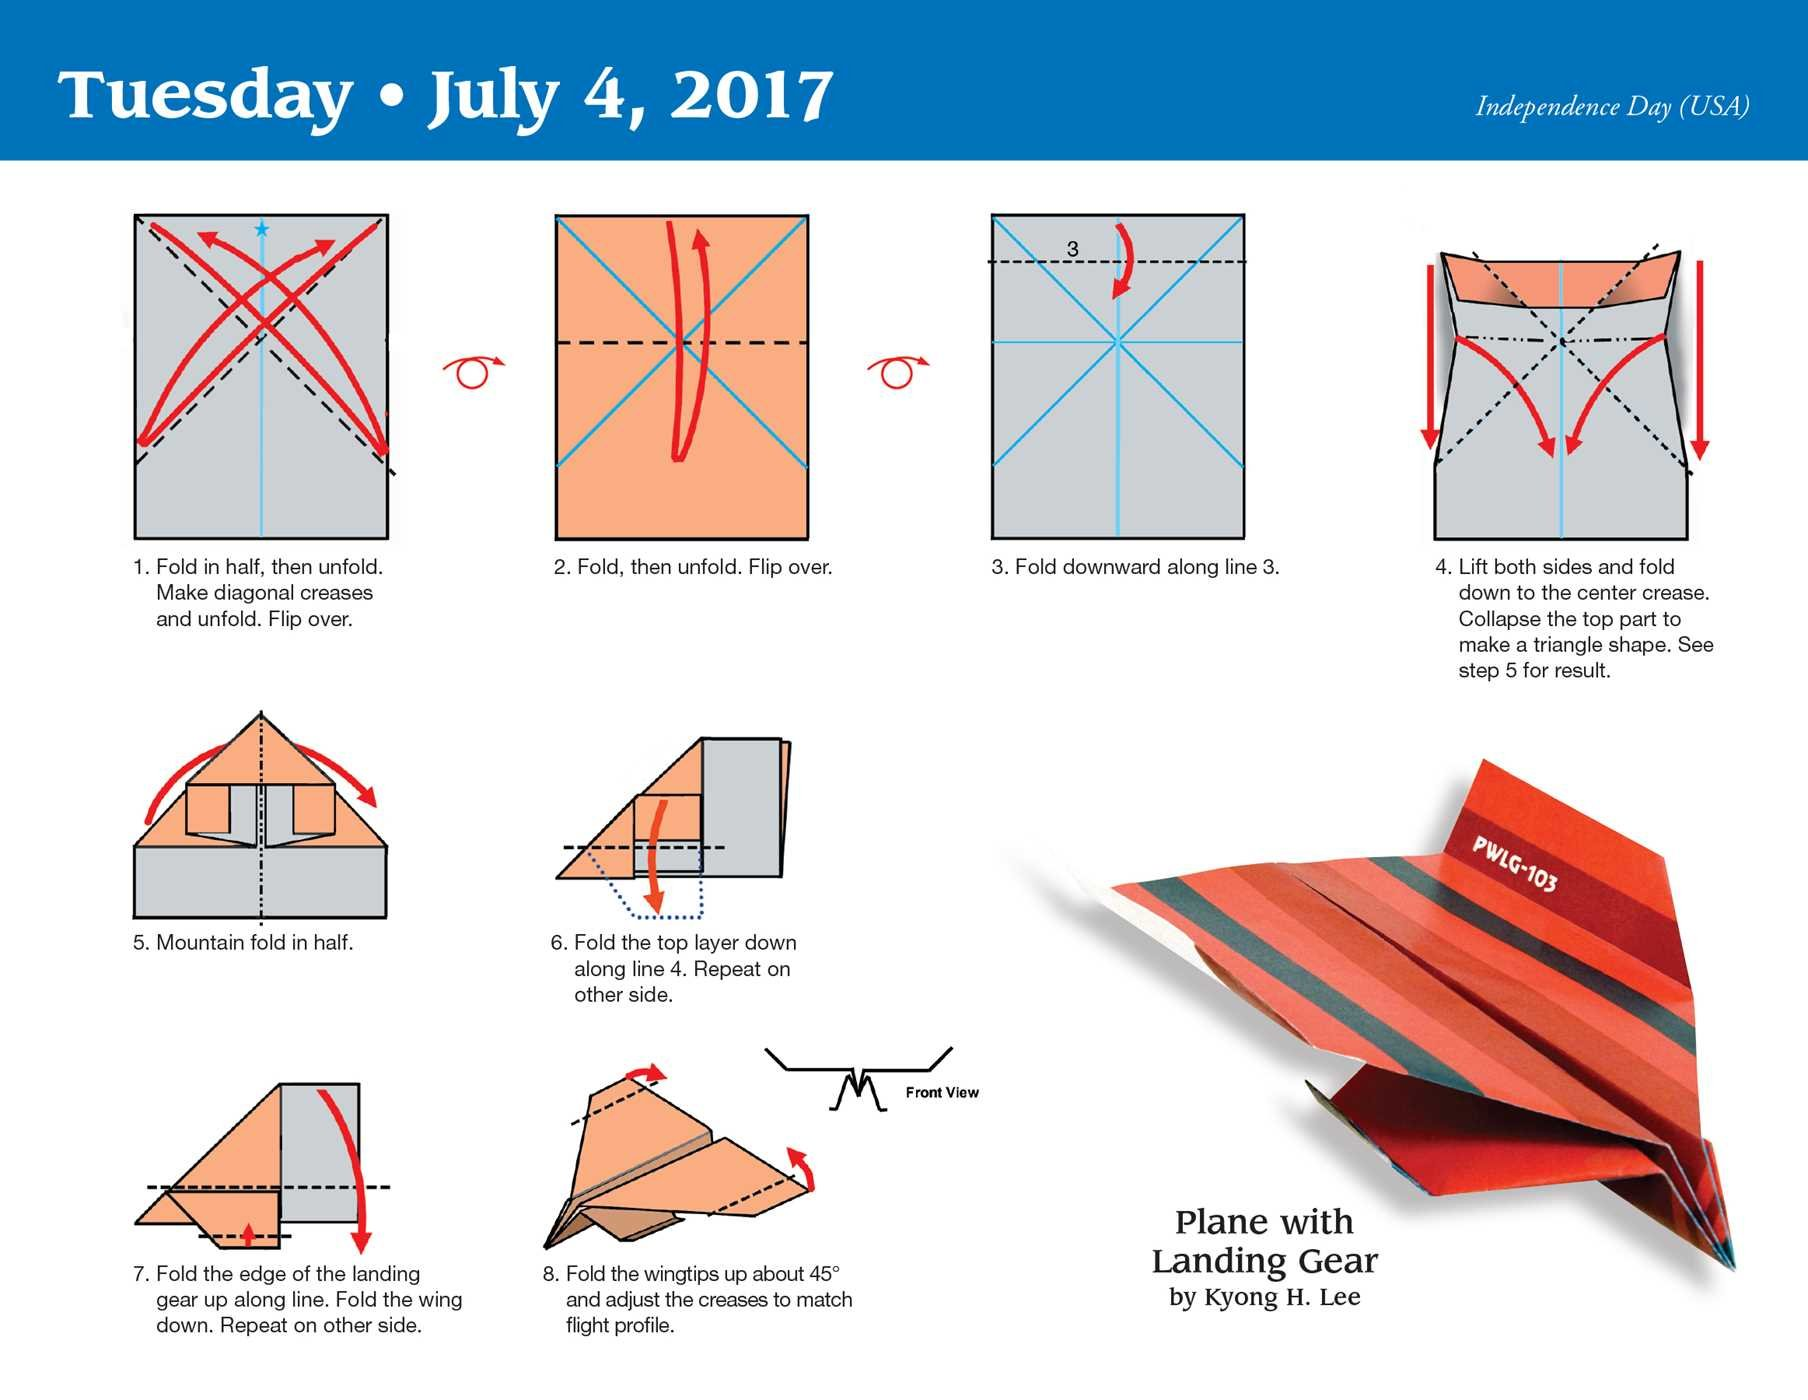 Paper Airplane Fold-a-Day 2017 Day-to-Day Calendar: Kyong Lee, David on paper plane painting, paper plane outline, paper plane illustration, paper plane blueprints, paper plane project, paper plane art, paper plane color, paper plane pattern, paper plane model, paper plane letter, paper plane layout, paper plane graphic, paper plane drawing, paper plane title, helicopter diagram, paper plane cartoon, paper plane paper, paper plane icon, paper plane note, paper plane template,